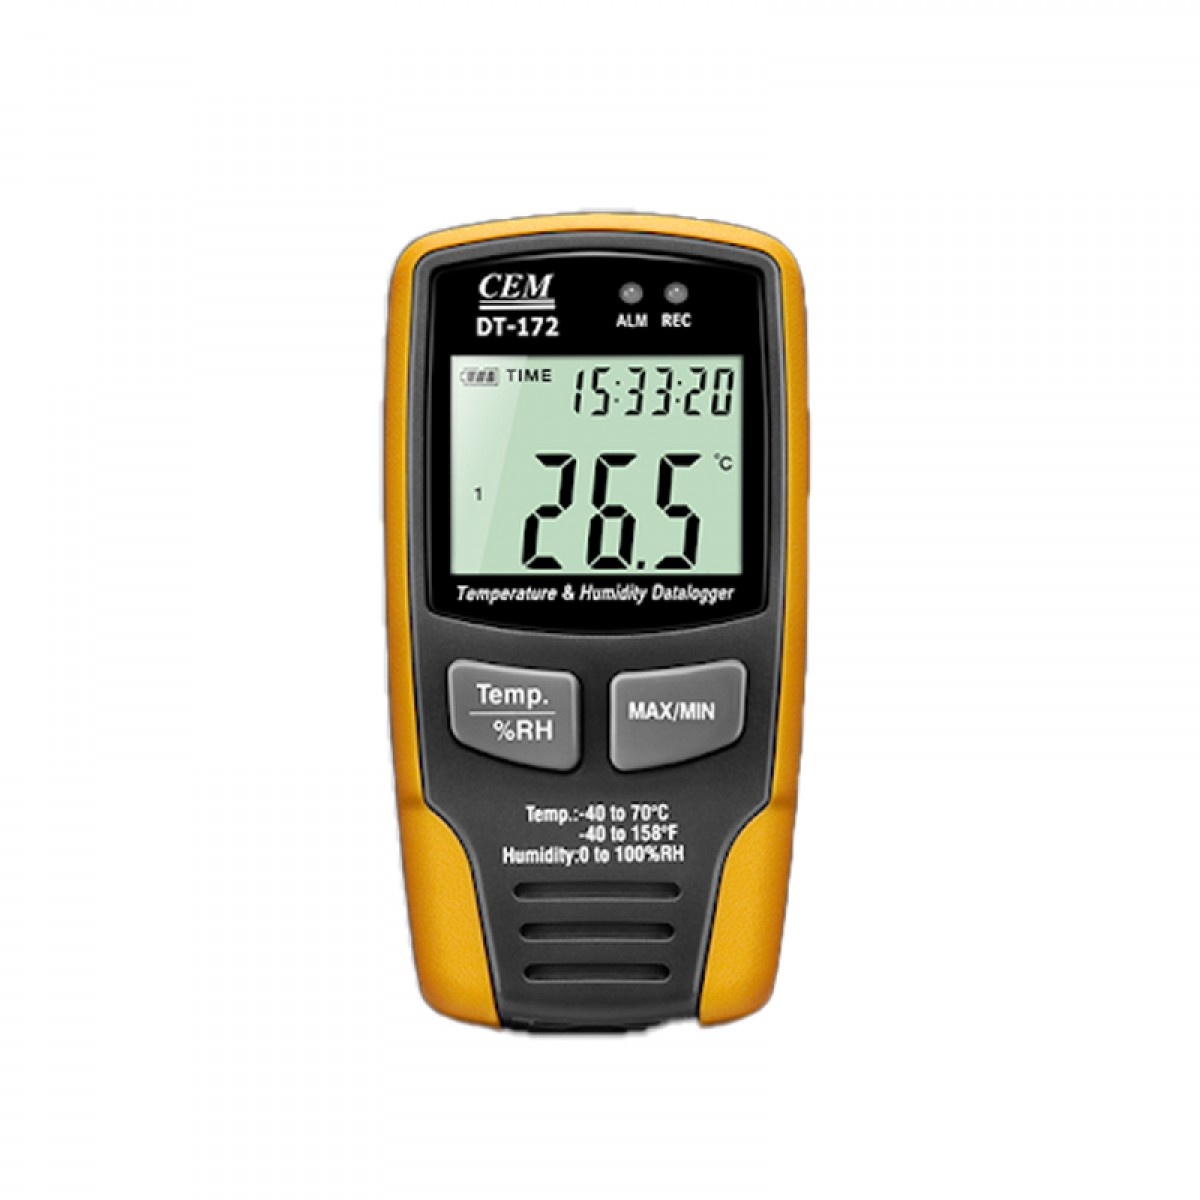 CEM Temperature and Humidity Datalogger DT-172